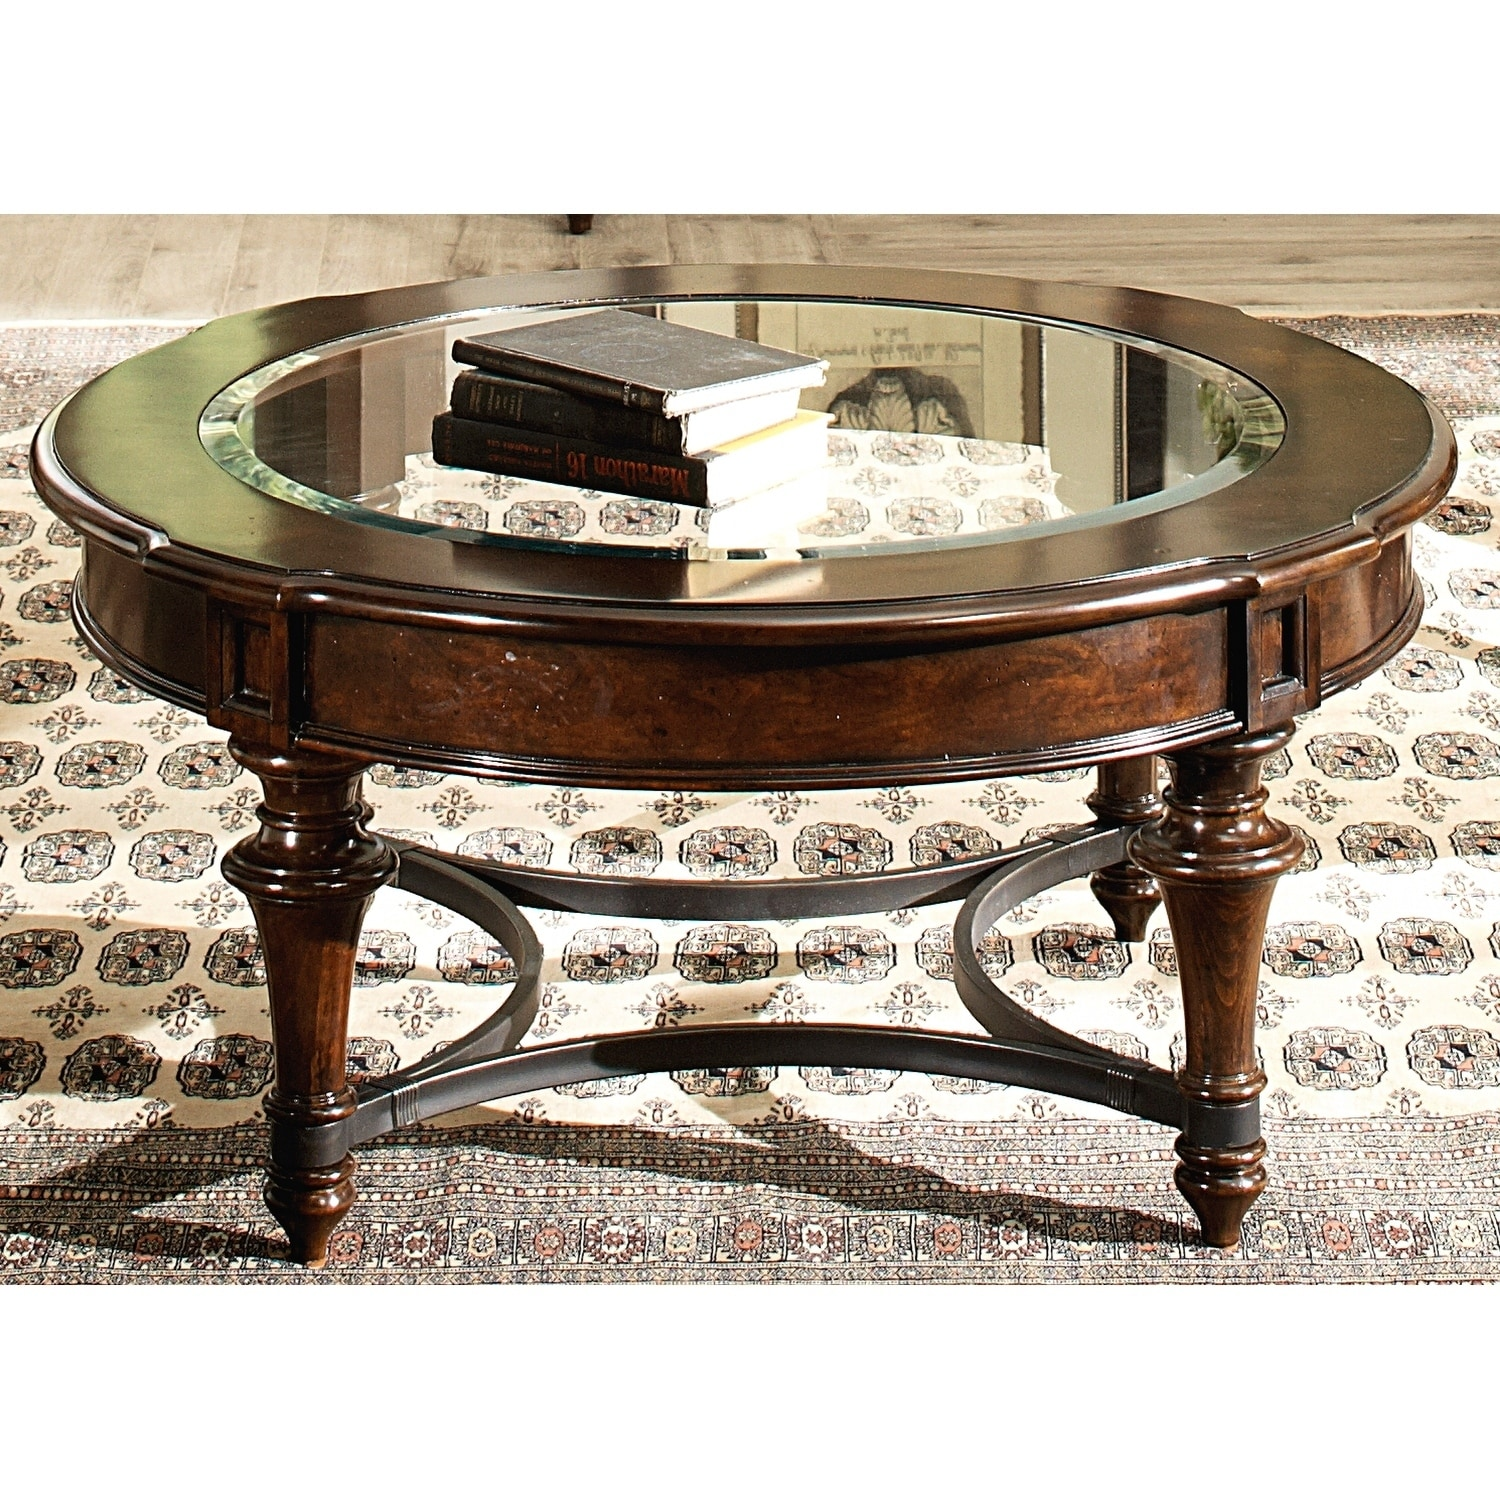 kingston plantation cognac glass insert round cocktail table end with free shipping today top furniture stickley rugs ashley kids bedroom sets sofa tures tables behind couches